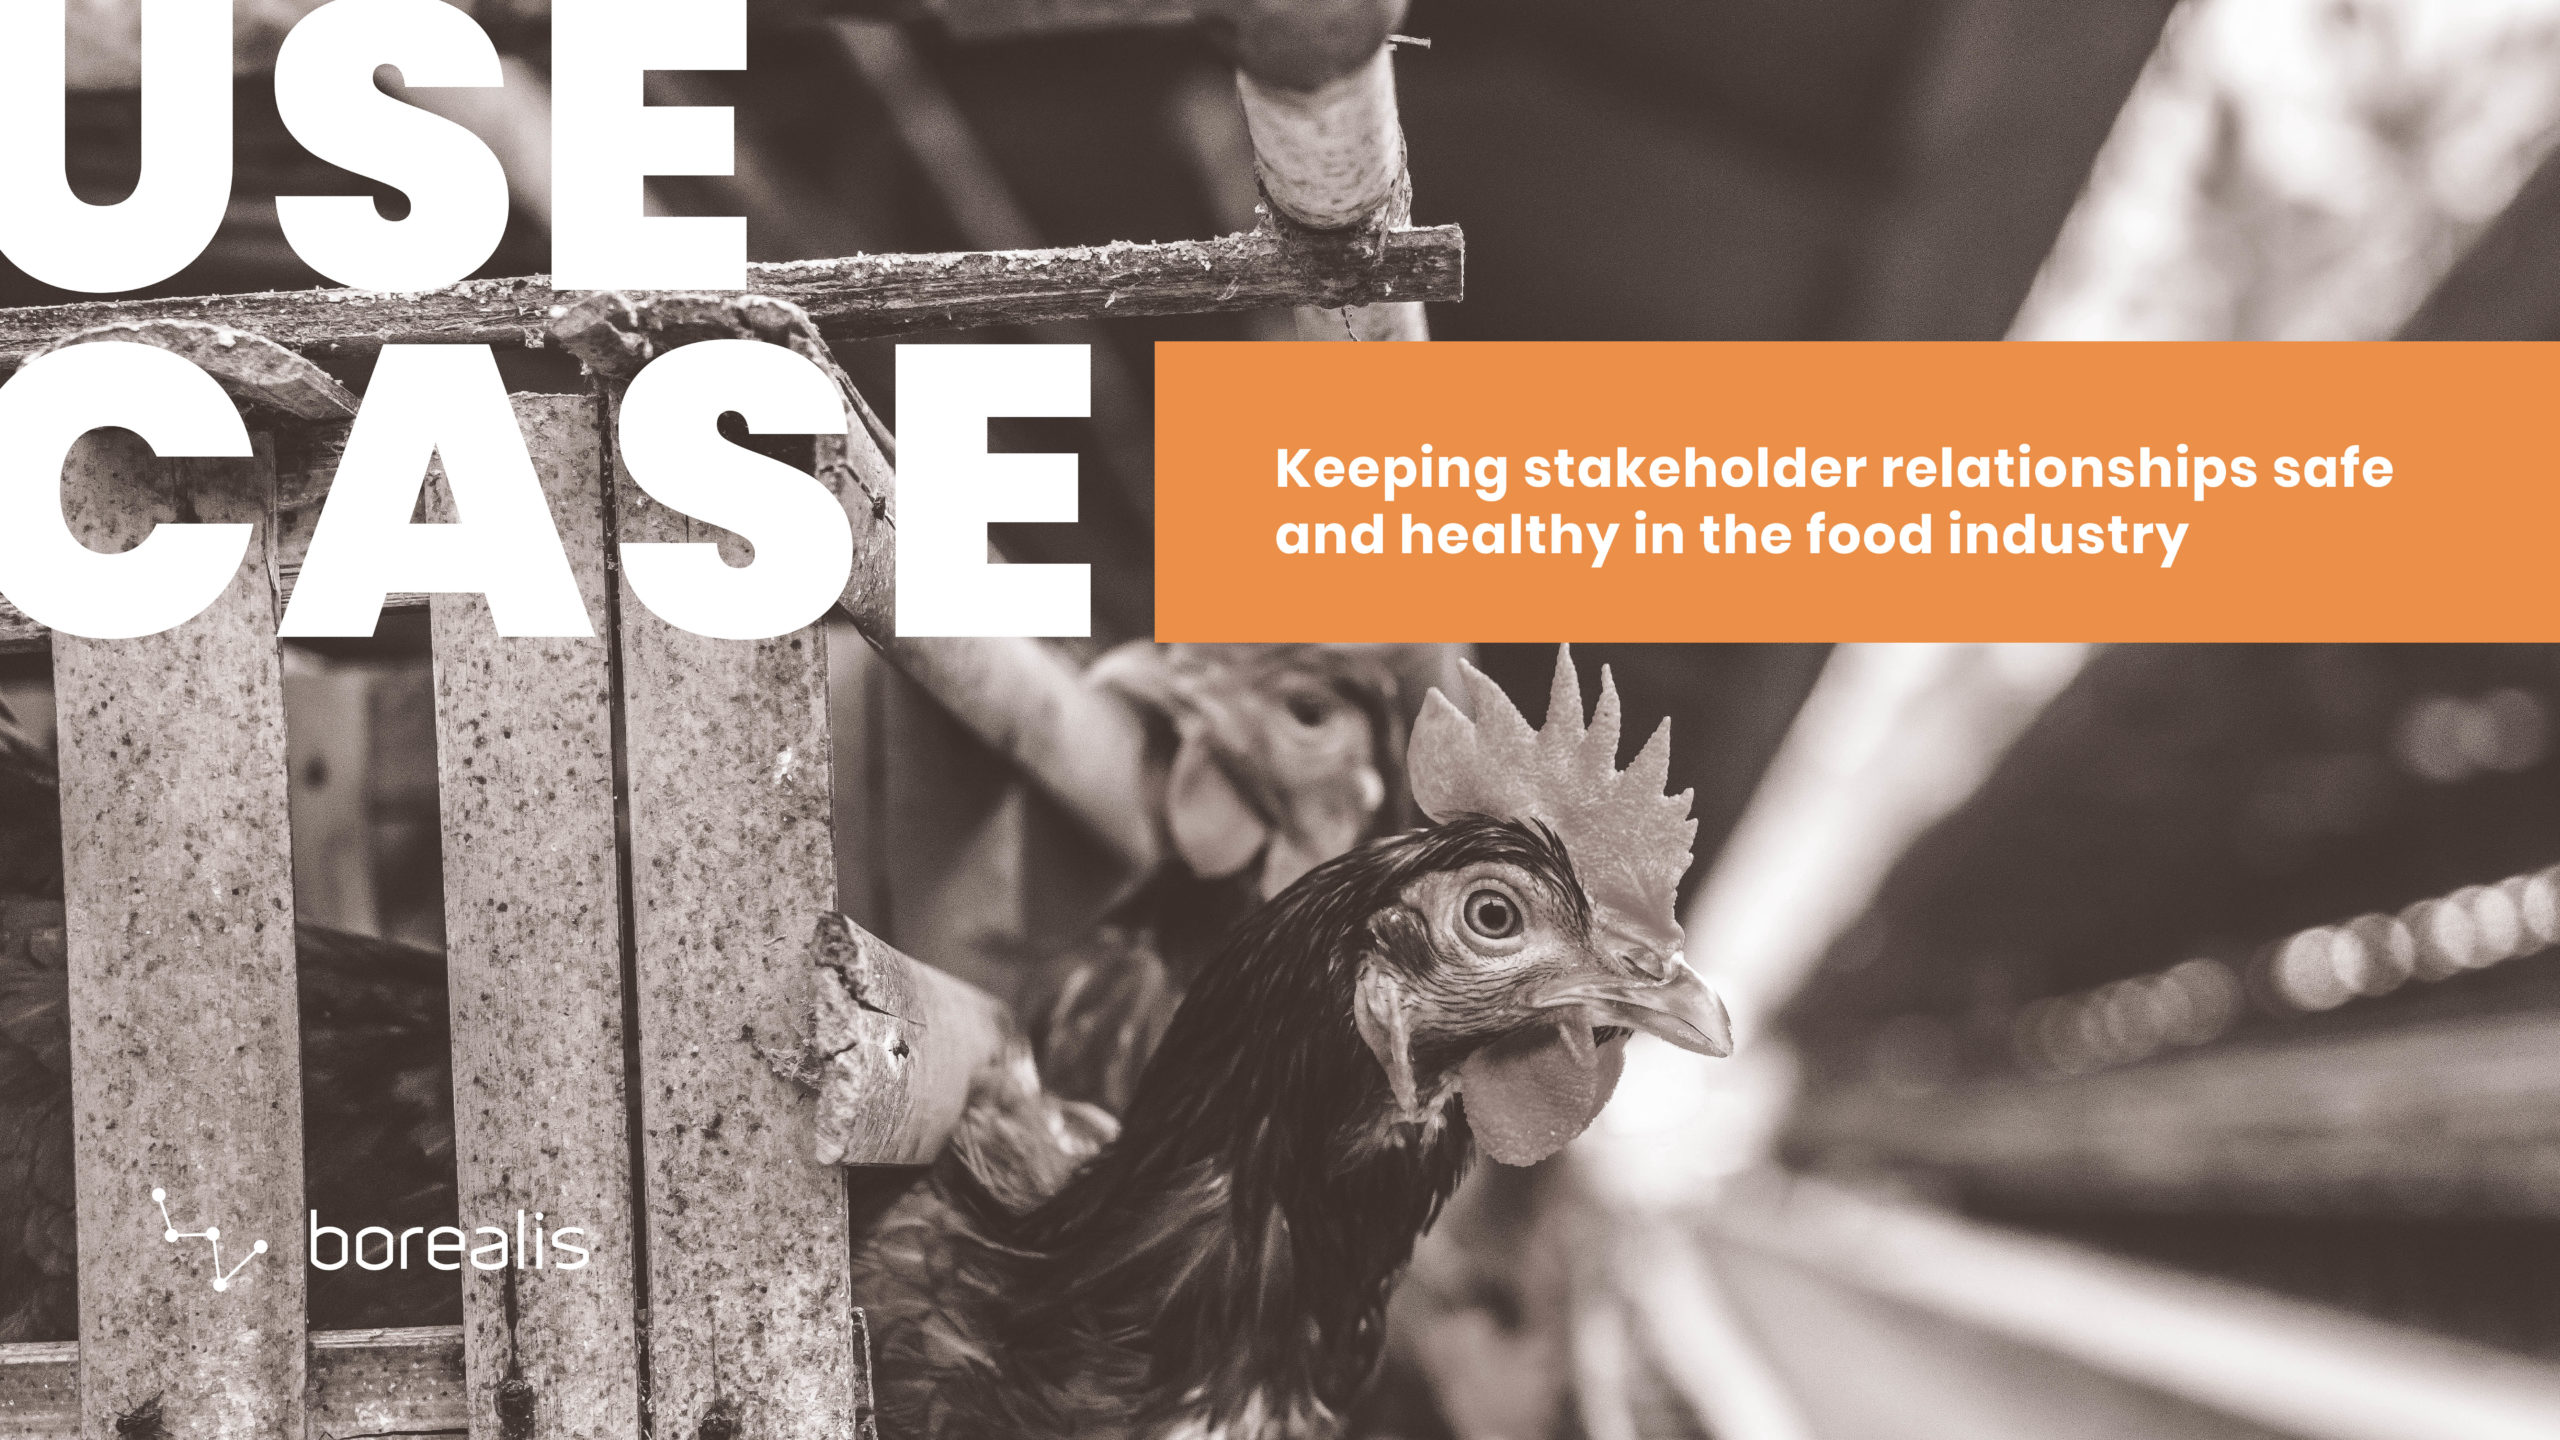 Keeping stakeholder relationships safe and healthy in the food industry